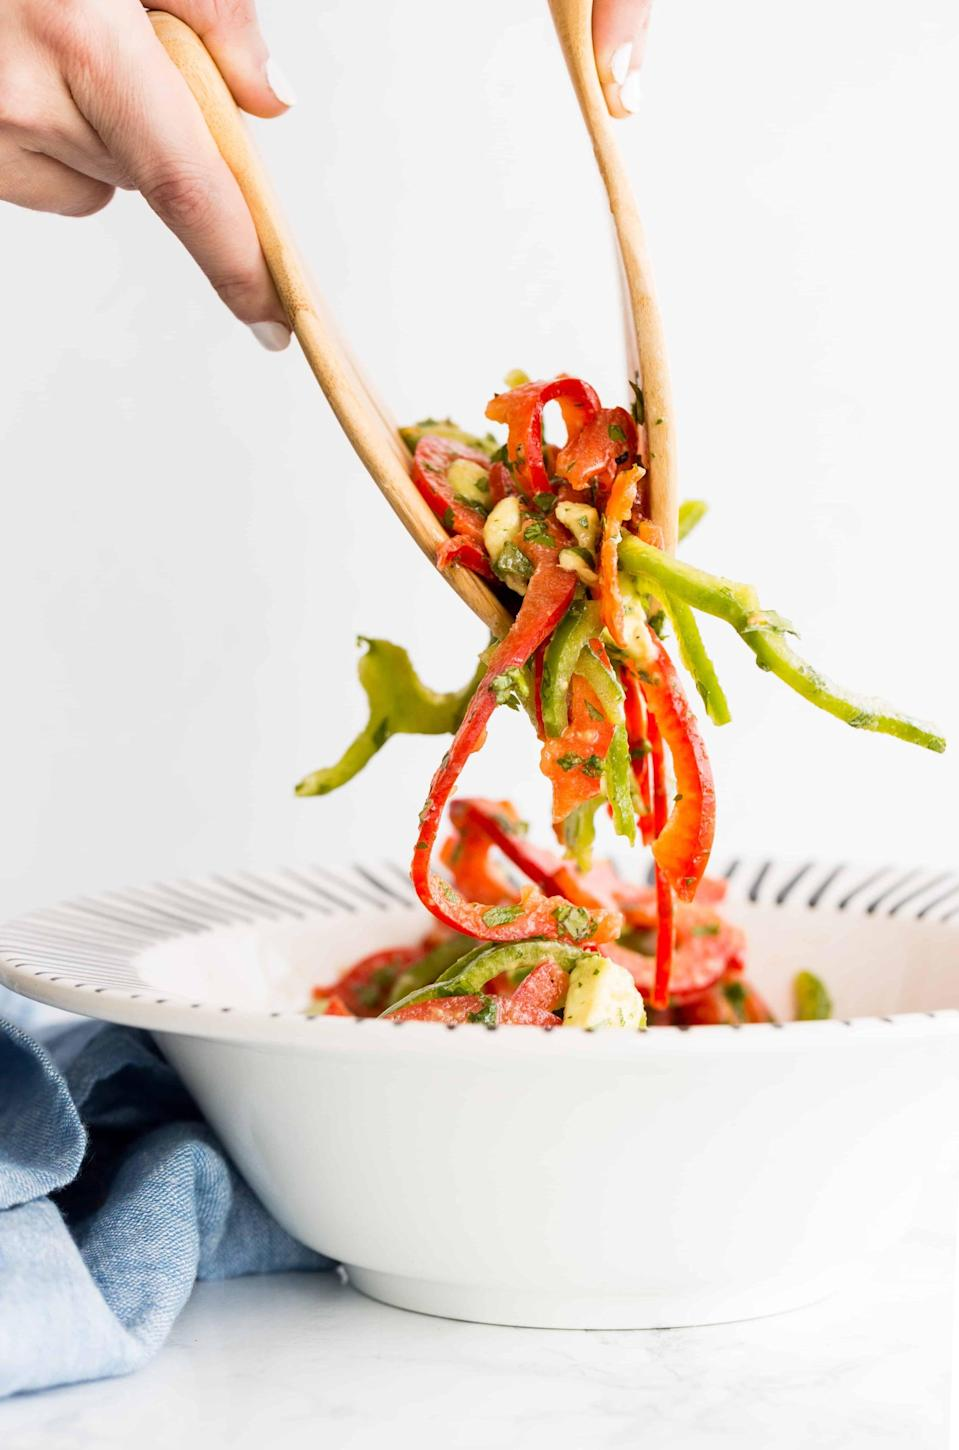 """<p>This avocado and bell pepper salad is a fresh and crunchy side to have on hand for every barbecue. It's also incredibly easy to put together - red and green bell peppers are cut up using a spiralizer, making preparation a breeze! Since this recipe was made to feed four, just cut it in half and you'll have the perfect amount for two people.</p> <p><strong>Get the recipe:</strong> <a href=""""http://inspiralized.com/avocado-and-bell-pepper-salad/"""" class=""""link rapid-noclick-resp"""" rel=""""nofollow noopener"""" target=""""_blank"""" data-ylk=""""slk:avocado and bell pepper salad"""">avocado and bell pepper salad</a></p>"""